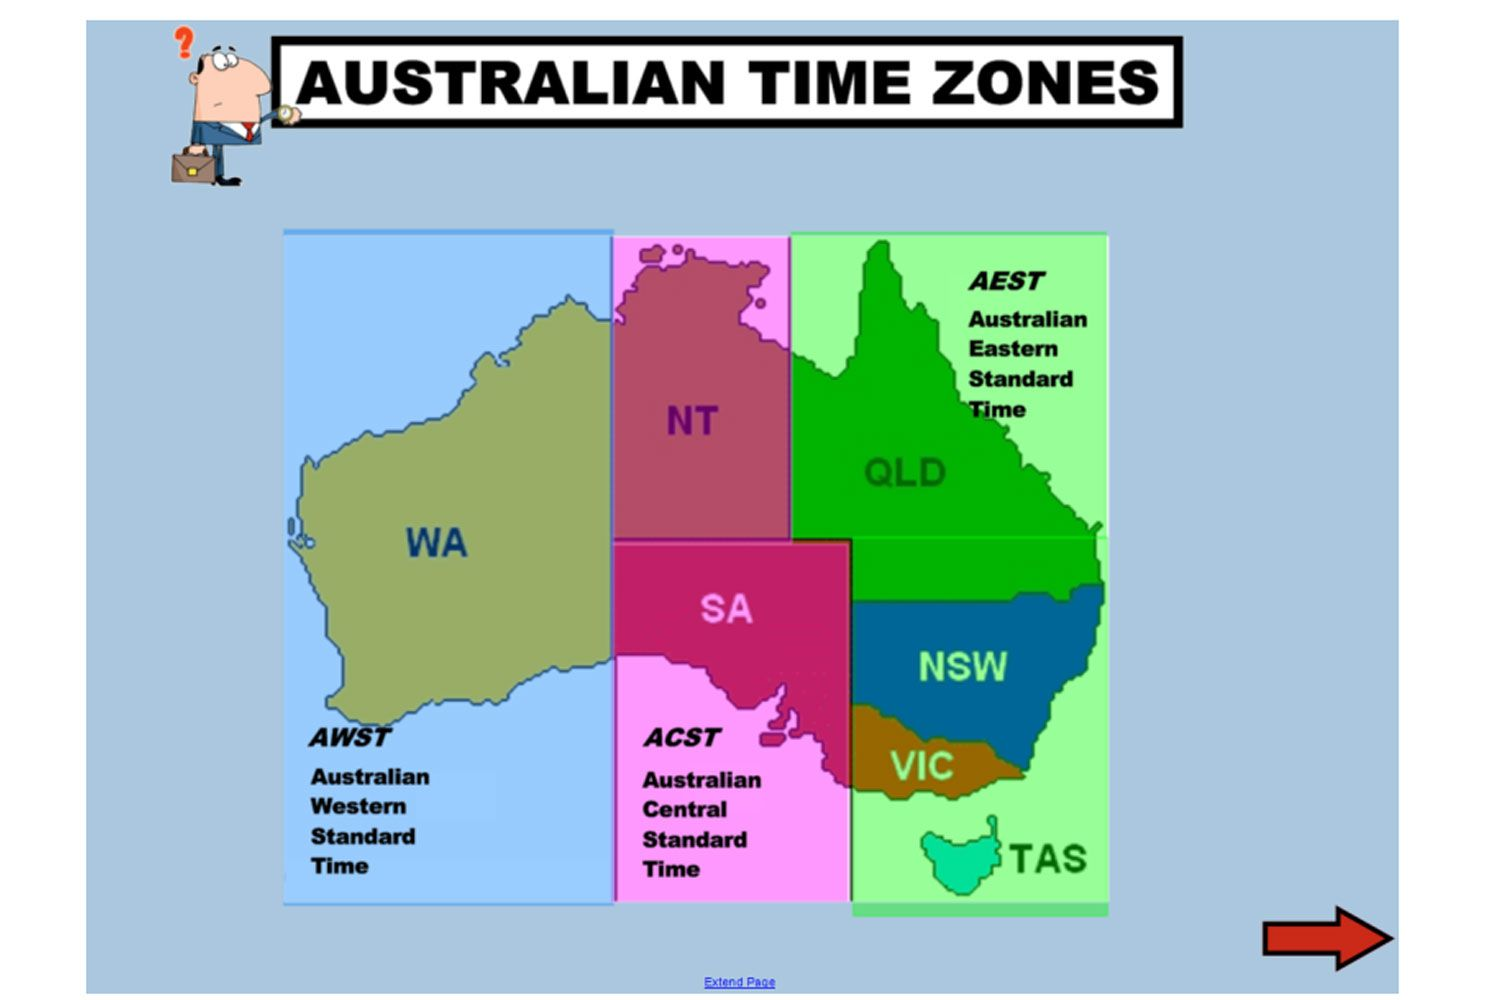 Worksheets Time Zones Worksheet learn all about australian time zones and daylight saving with this terrific iwb lesson